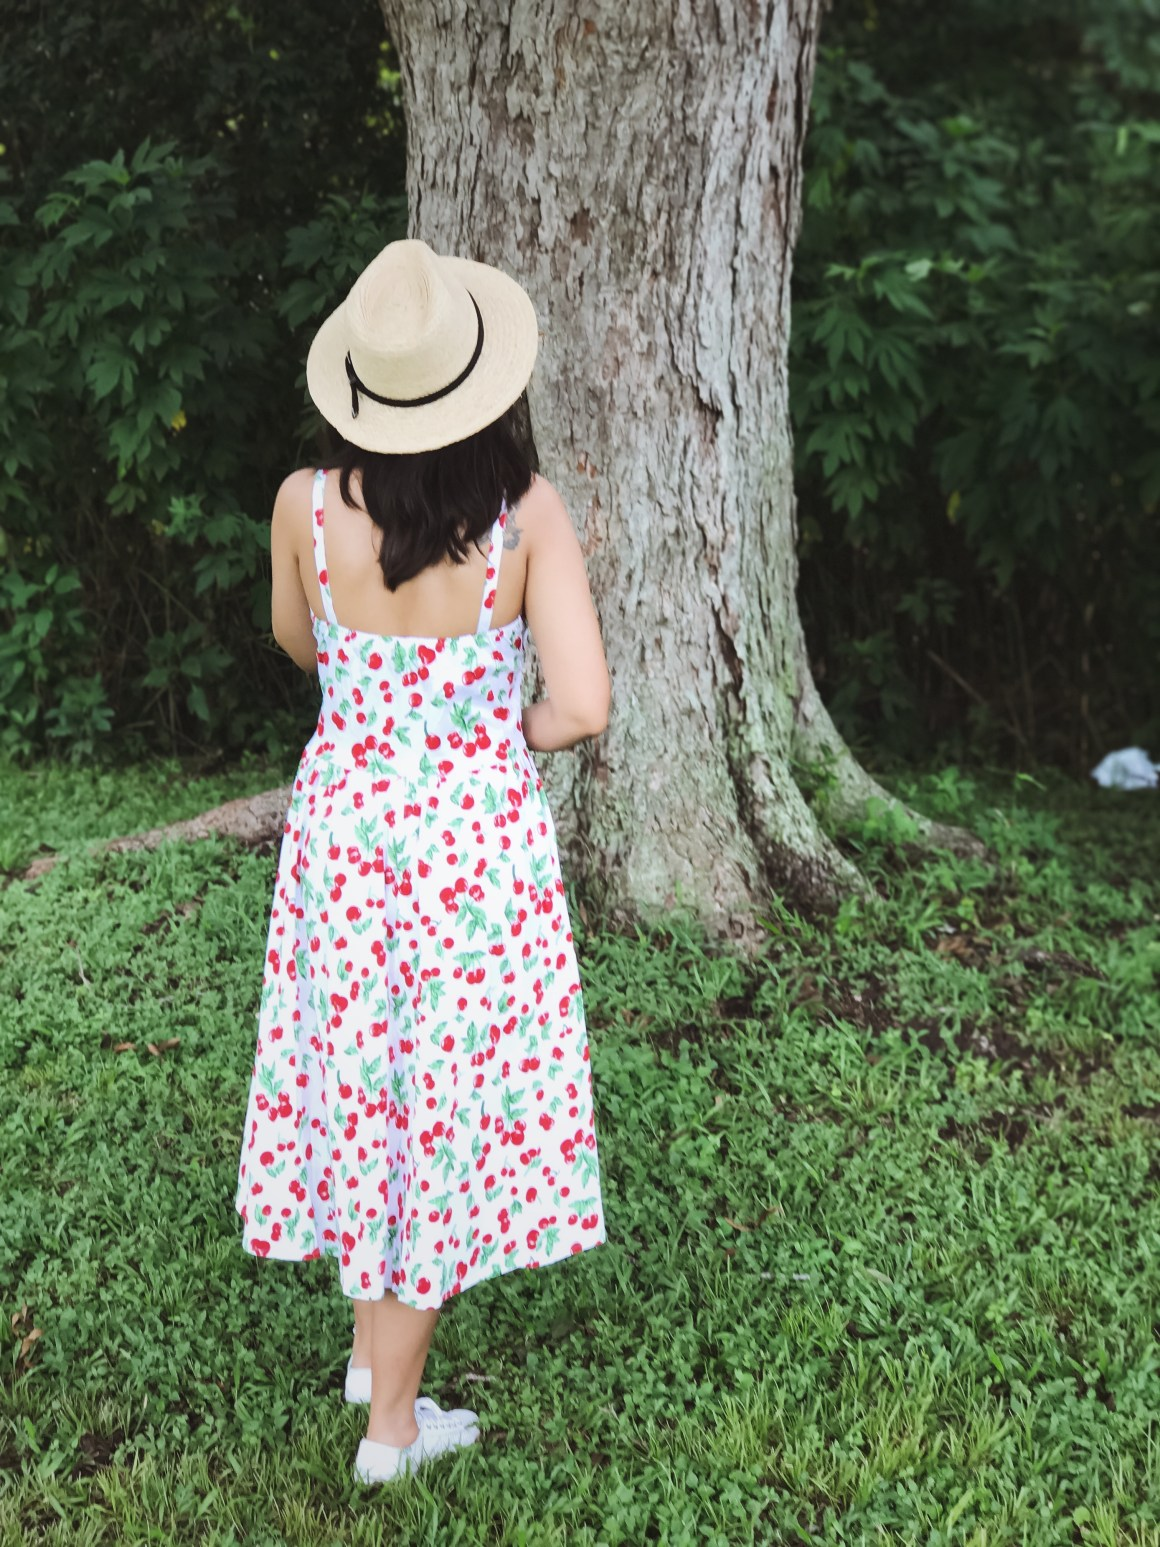 Cherry Print Dress, ASOS hat